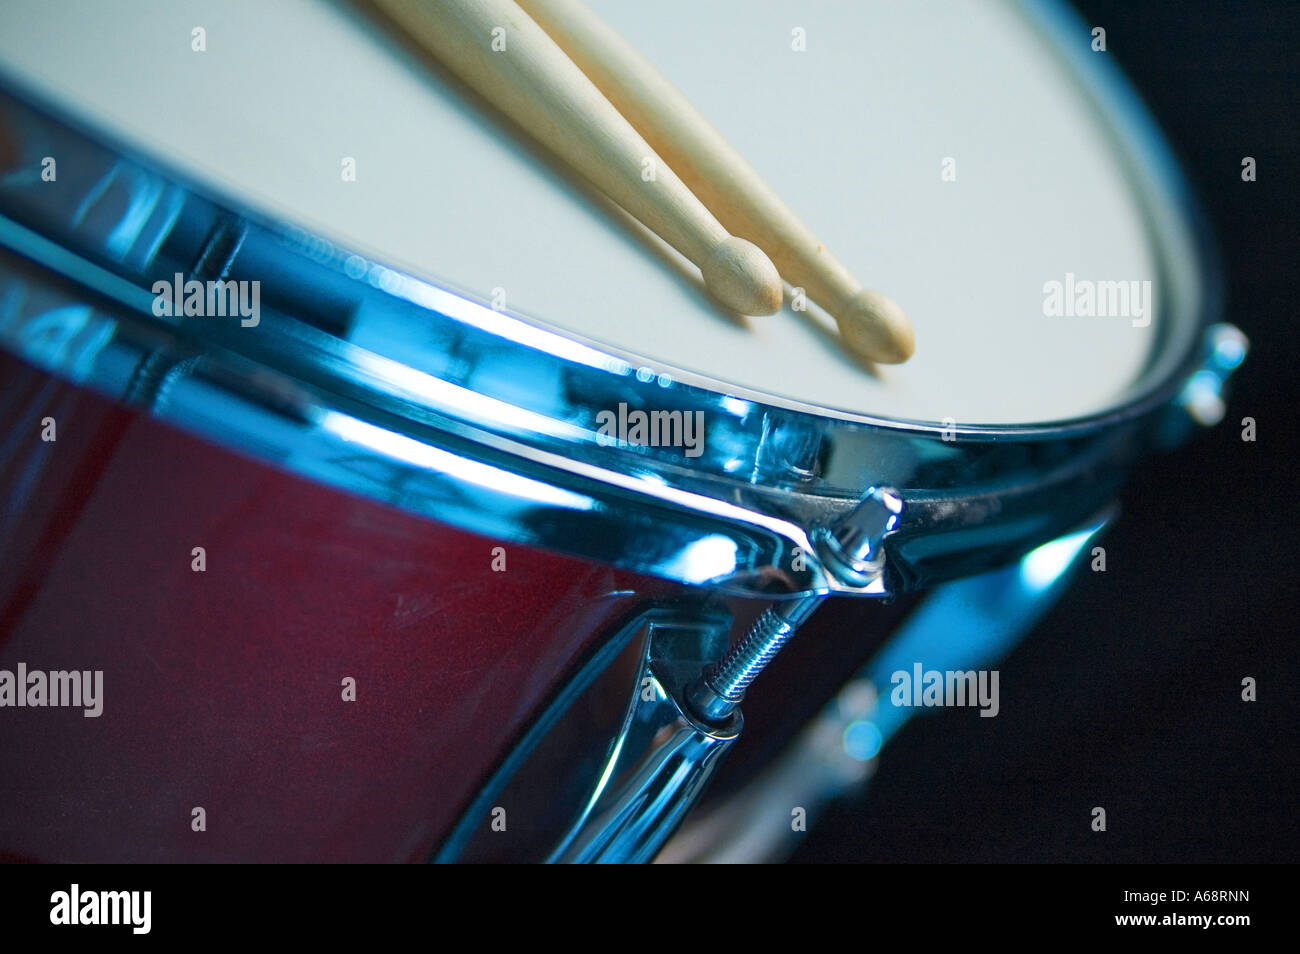 A Snare Drum Stock Photos & A Snare Drum Stock Images - Alamy